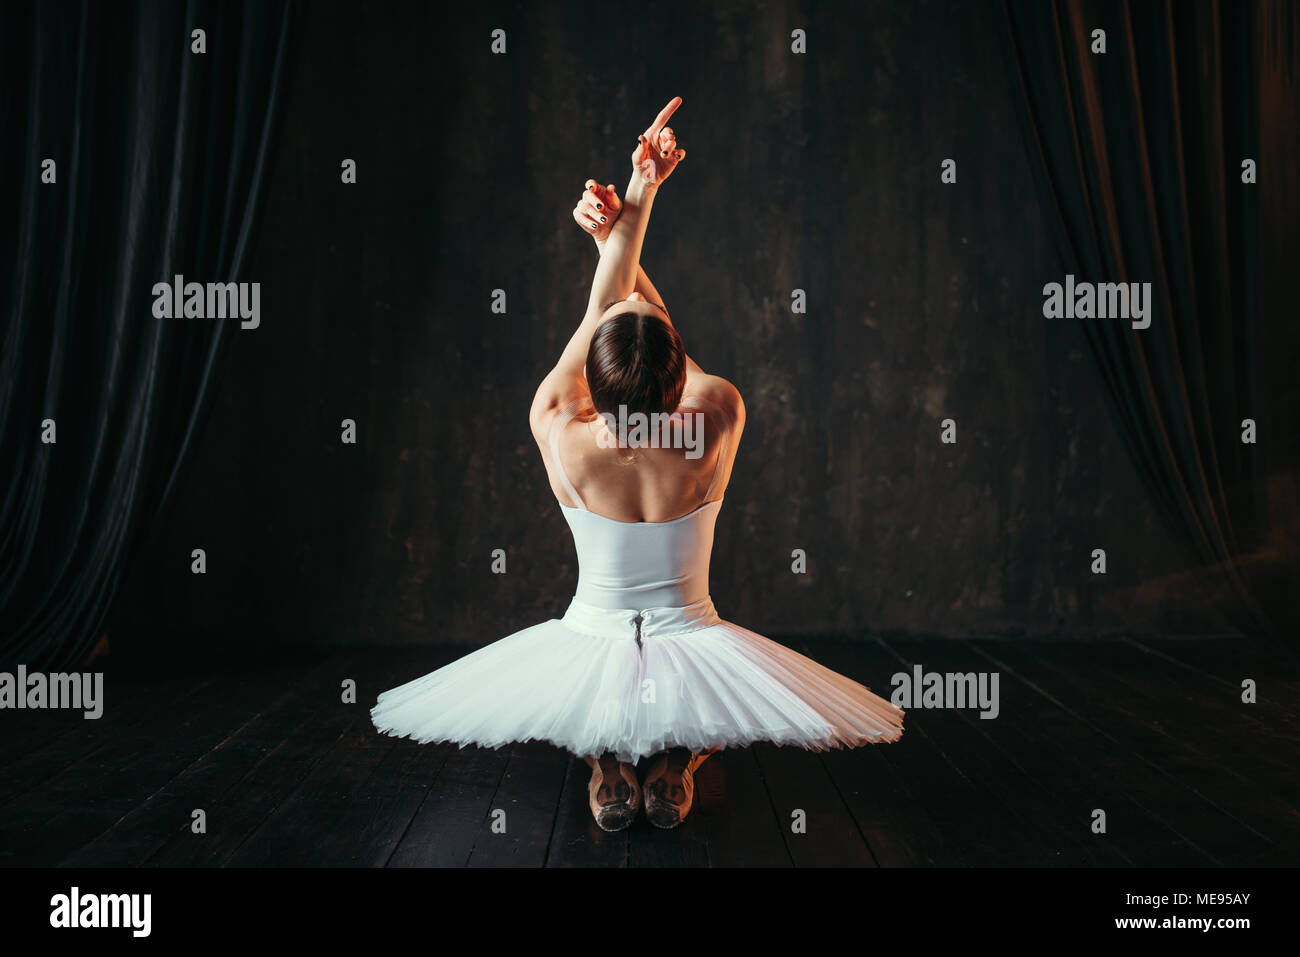 Female classical ballet performer in white dress sitting on the floor, back view. Ballerina training in class with window - Stock Image